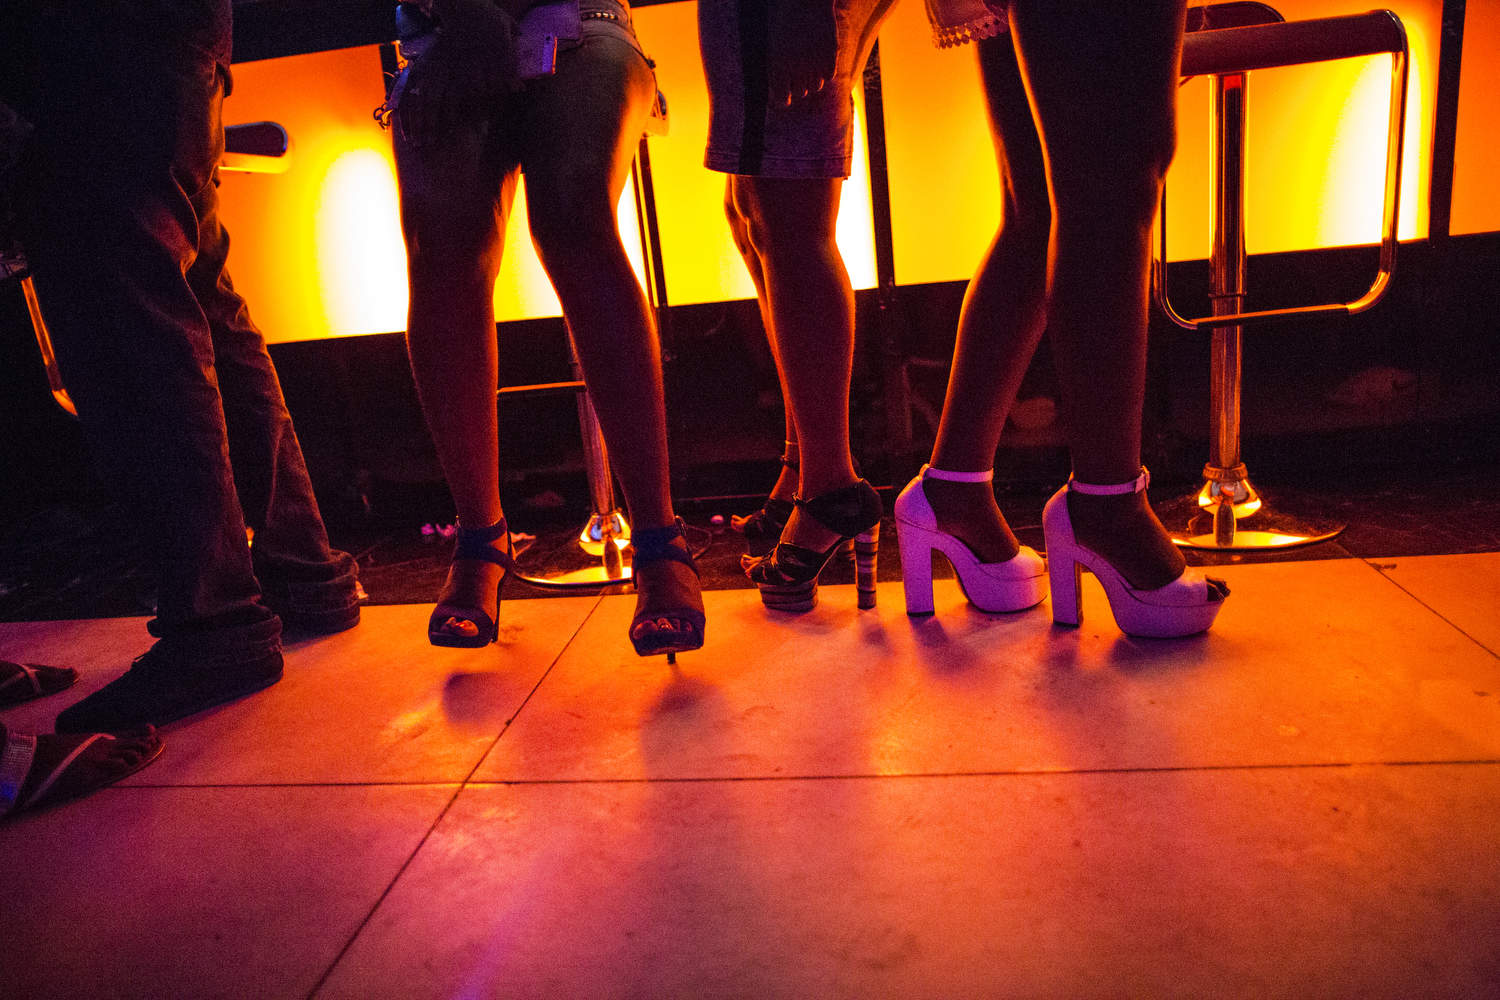 Girls stand by the bar, all dressed up, at 57, a high end night club in Lagos, Nigeria.